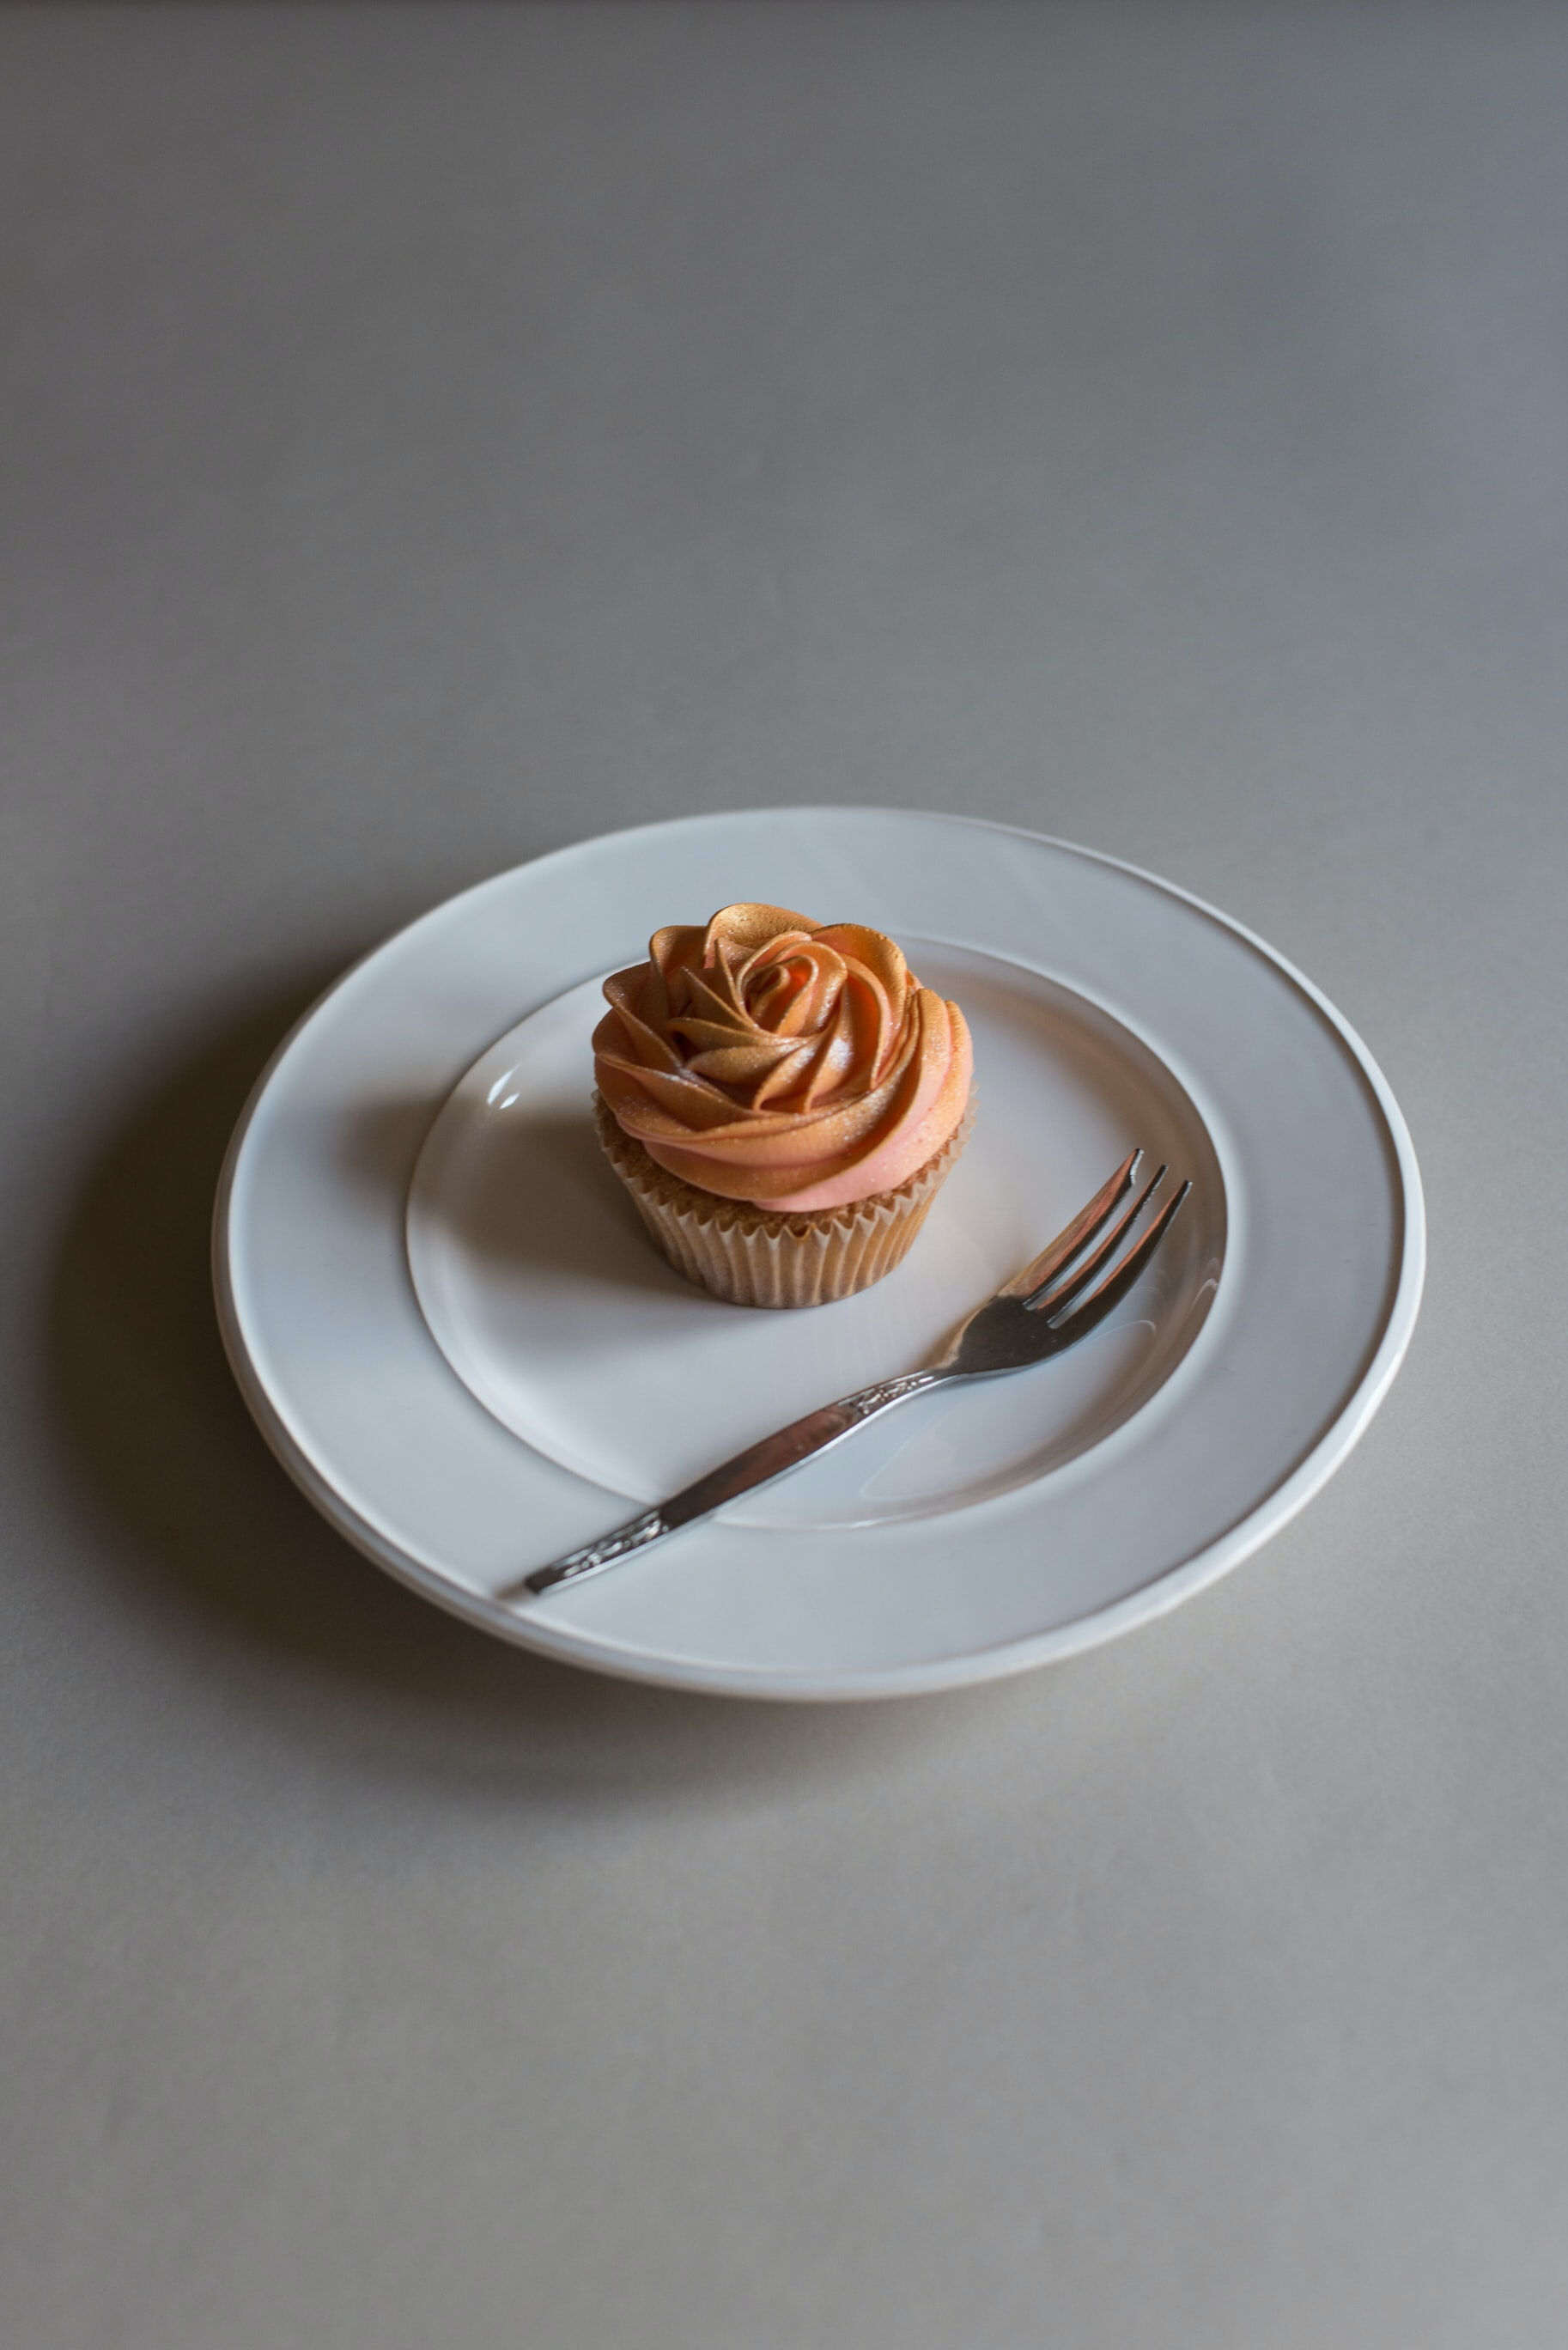 round ceramic plate with cupcake on top